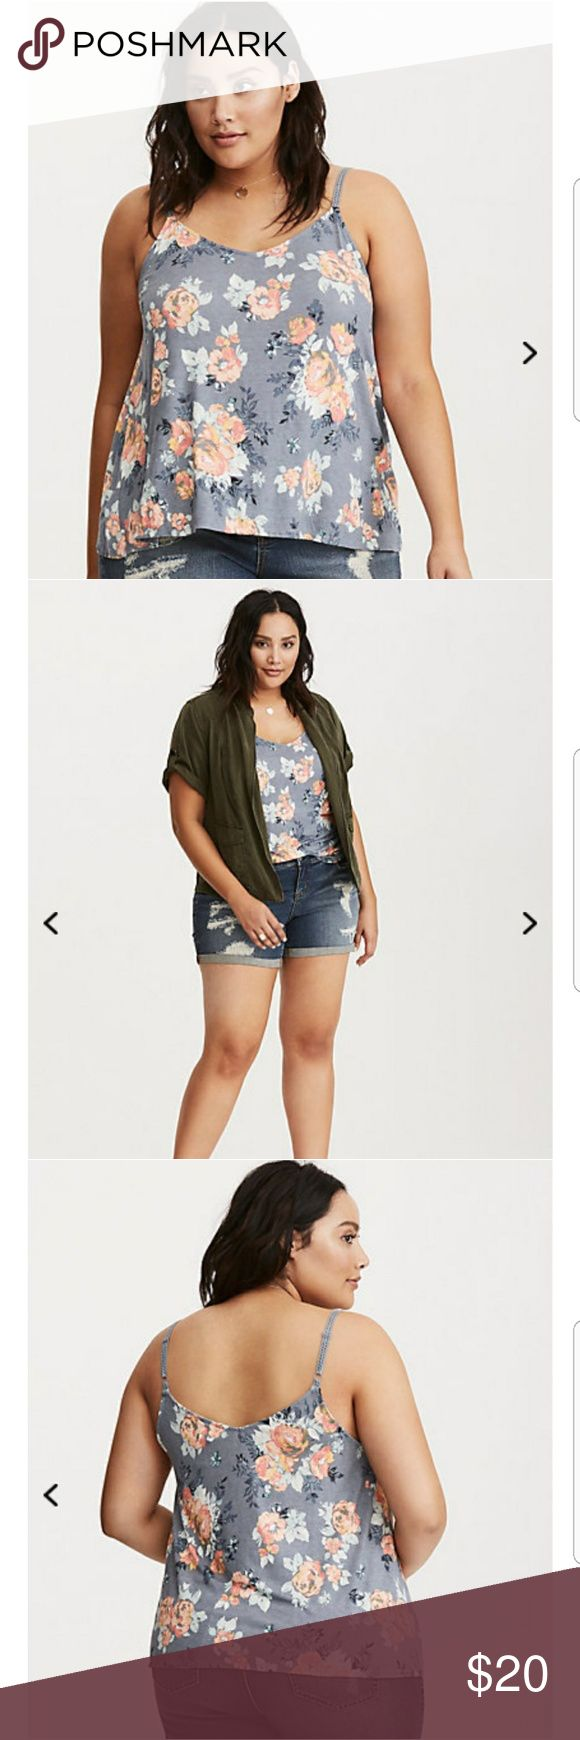 Floral Print Crochet Trim Cami Top Drought? What drought? There's no such thing with this cami top. Toned-down hacci knit blooms with a vintage-inspired, multi-color floral print that's flirty and feminine. Finished with crochet straps that are boho beautiful. torrid Tops